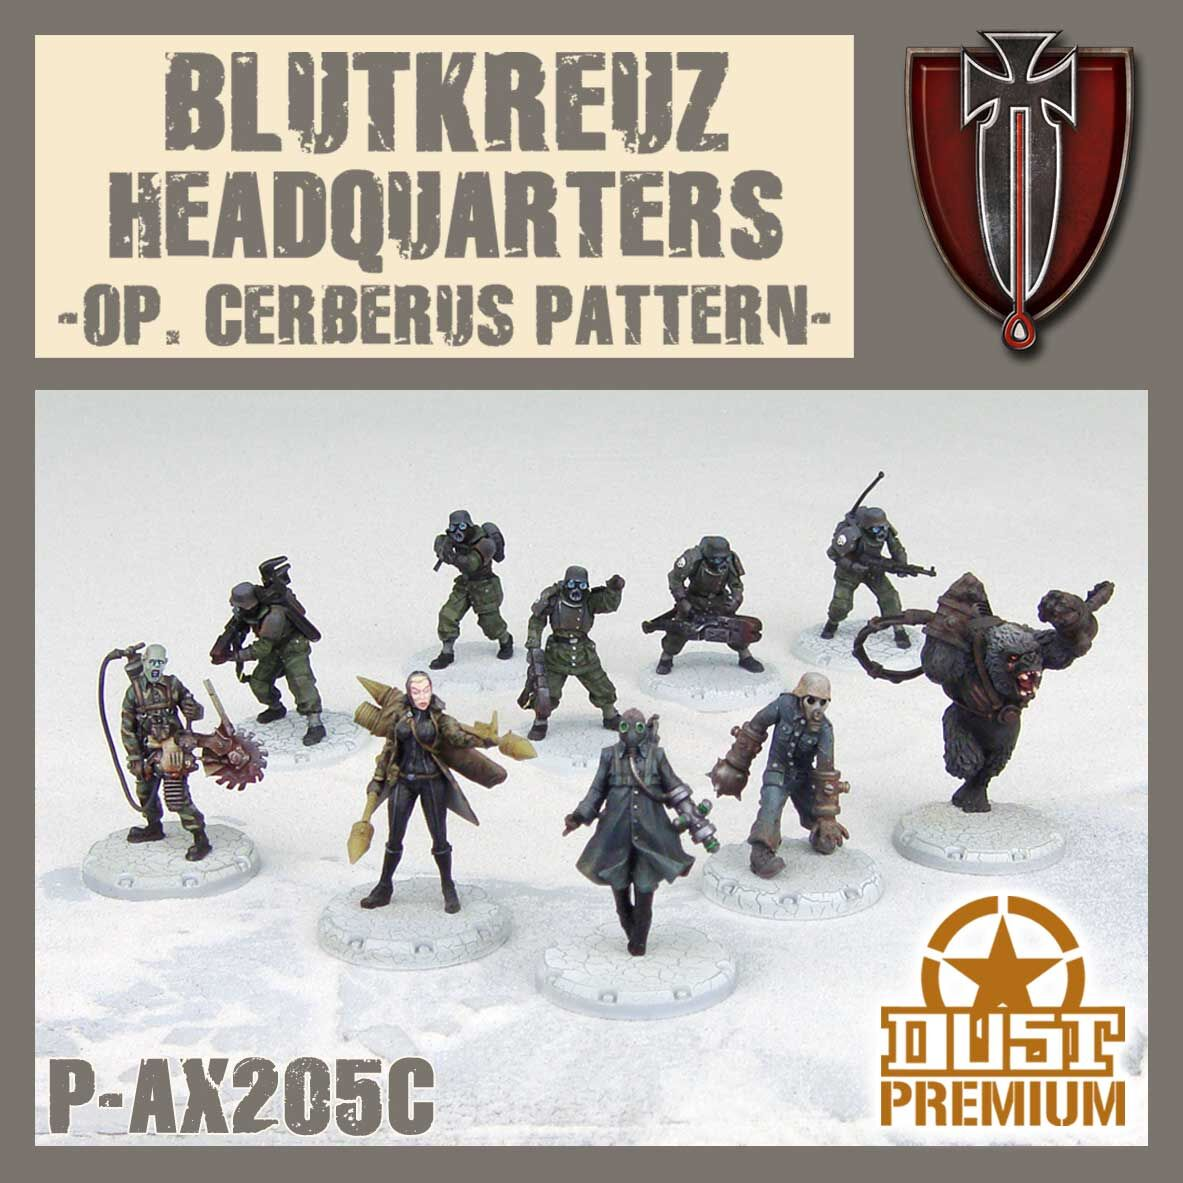 Blutkreuz Headquarters Premium